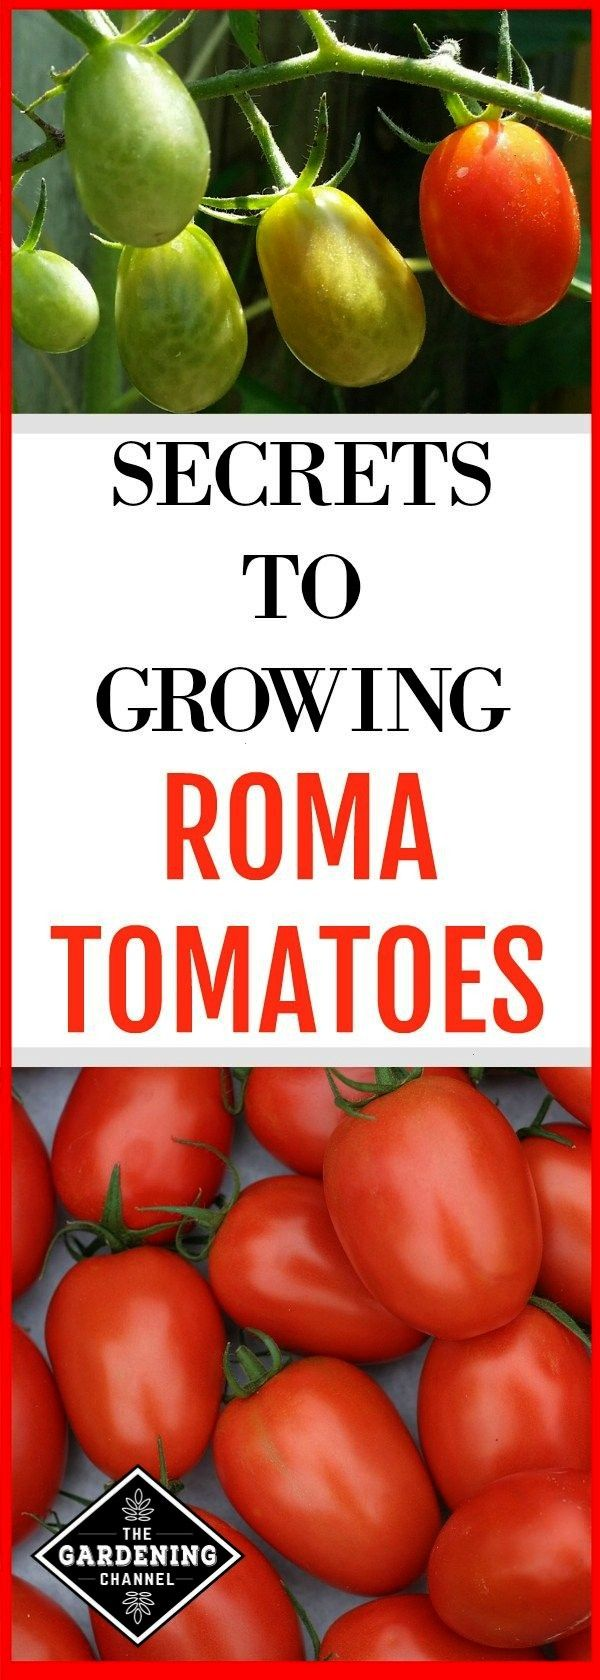 tomatoes growing in the garden and roma tomato harvest with text overlay secrets to growing roma tomatoesroma tomatoes growing in the garden and roma tomato harvest with...